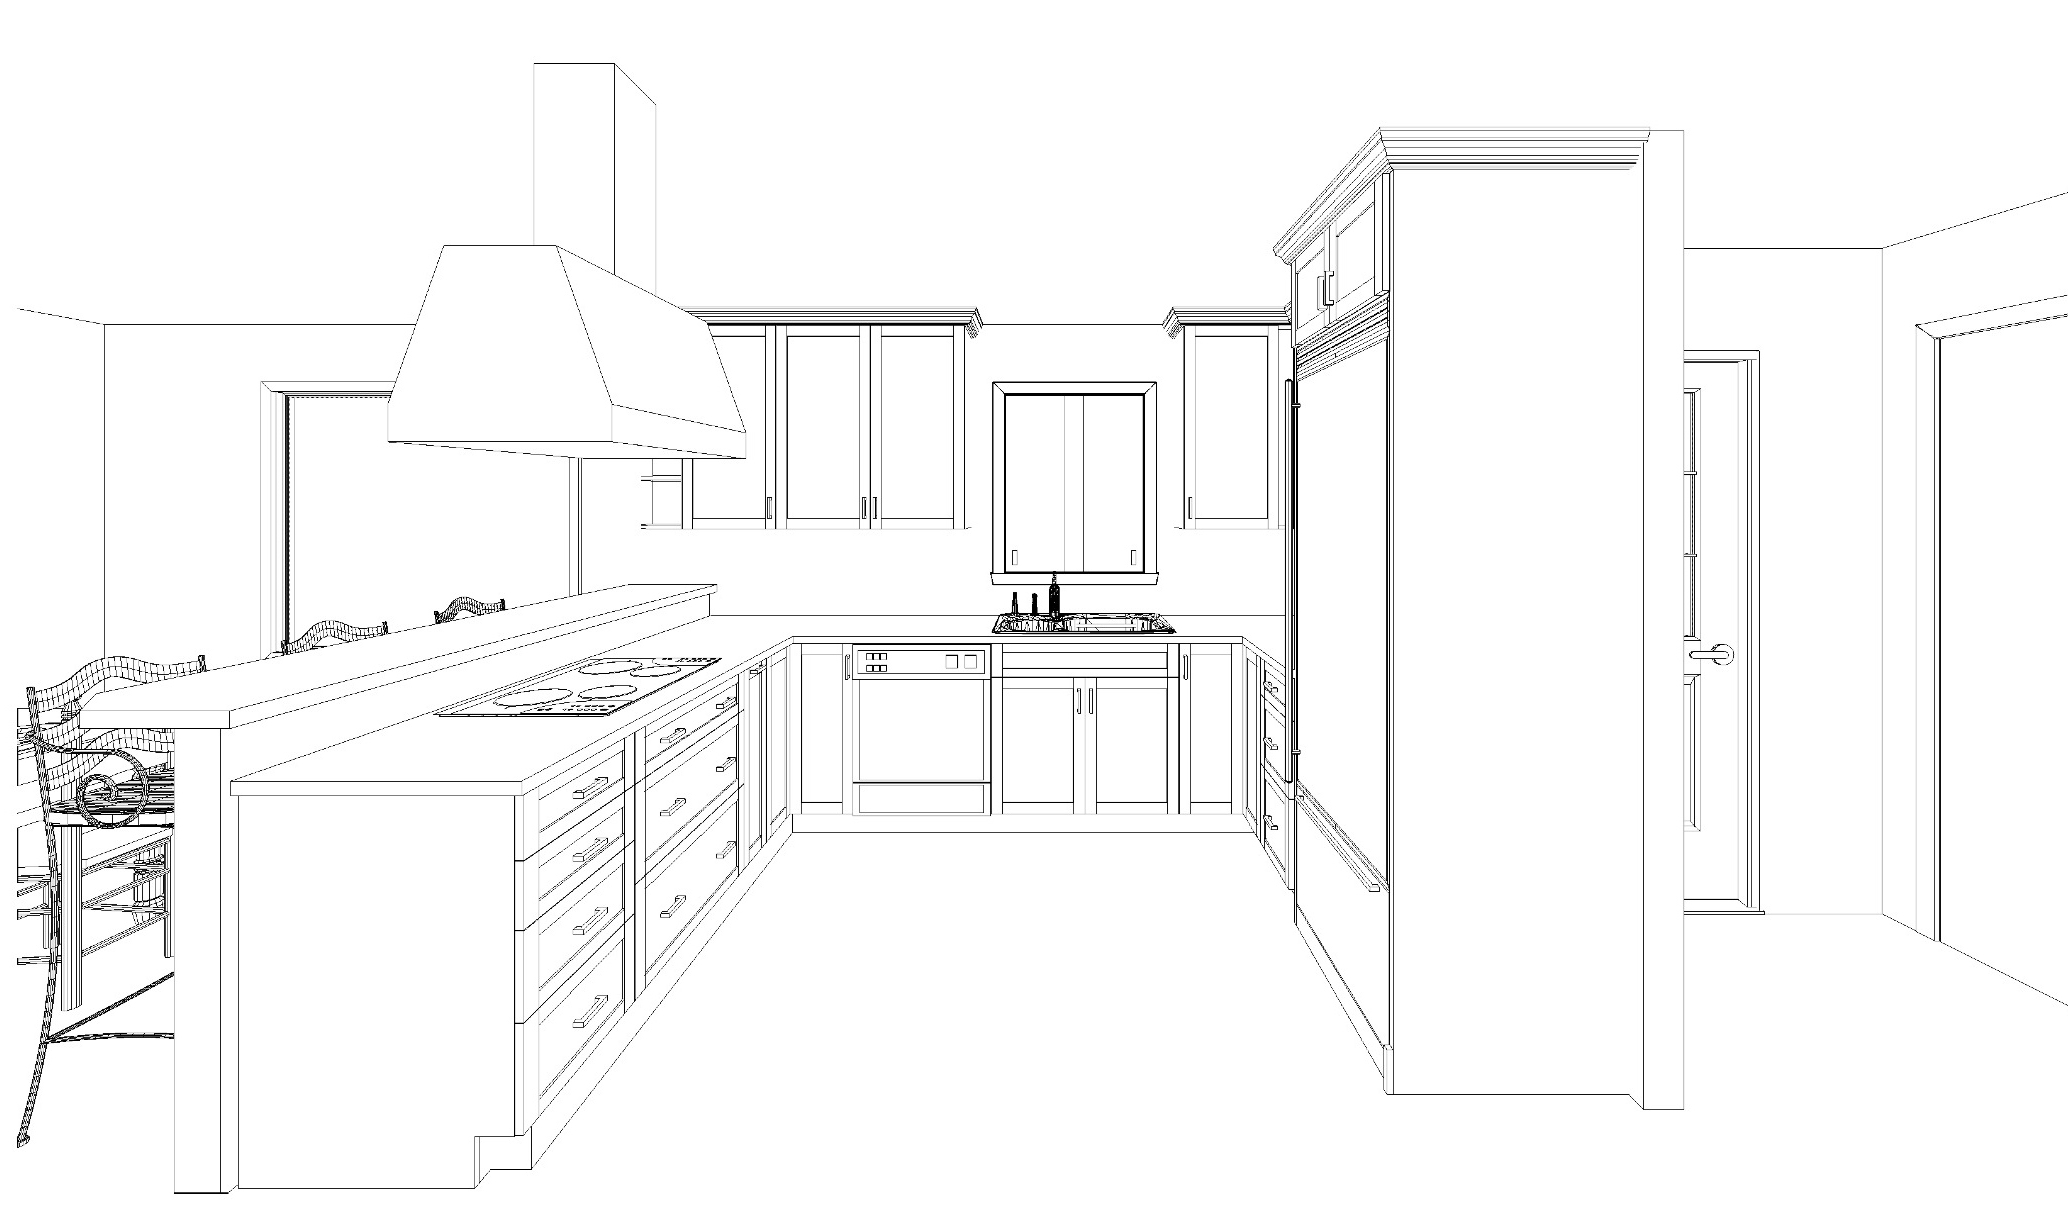 Kitchen Architecture Design Ideas Plan Contemporary Archicad Autocad Drawing Landscape Inspiration Kitchen How To Design Kitchen Layout From Blah Into Fantastic (View 5 of 38)